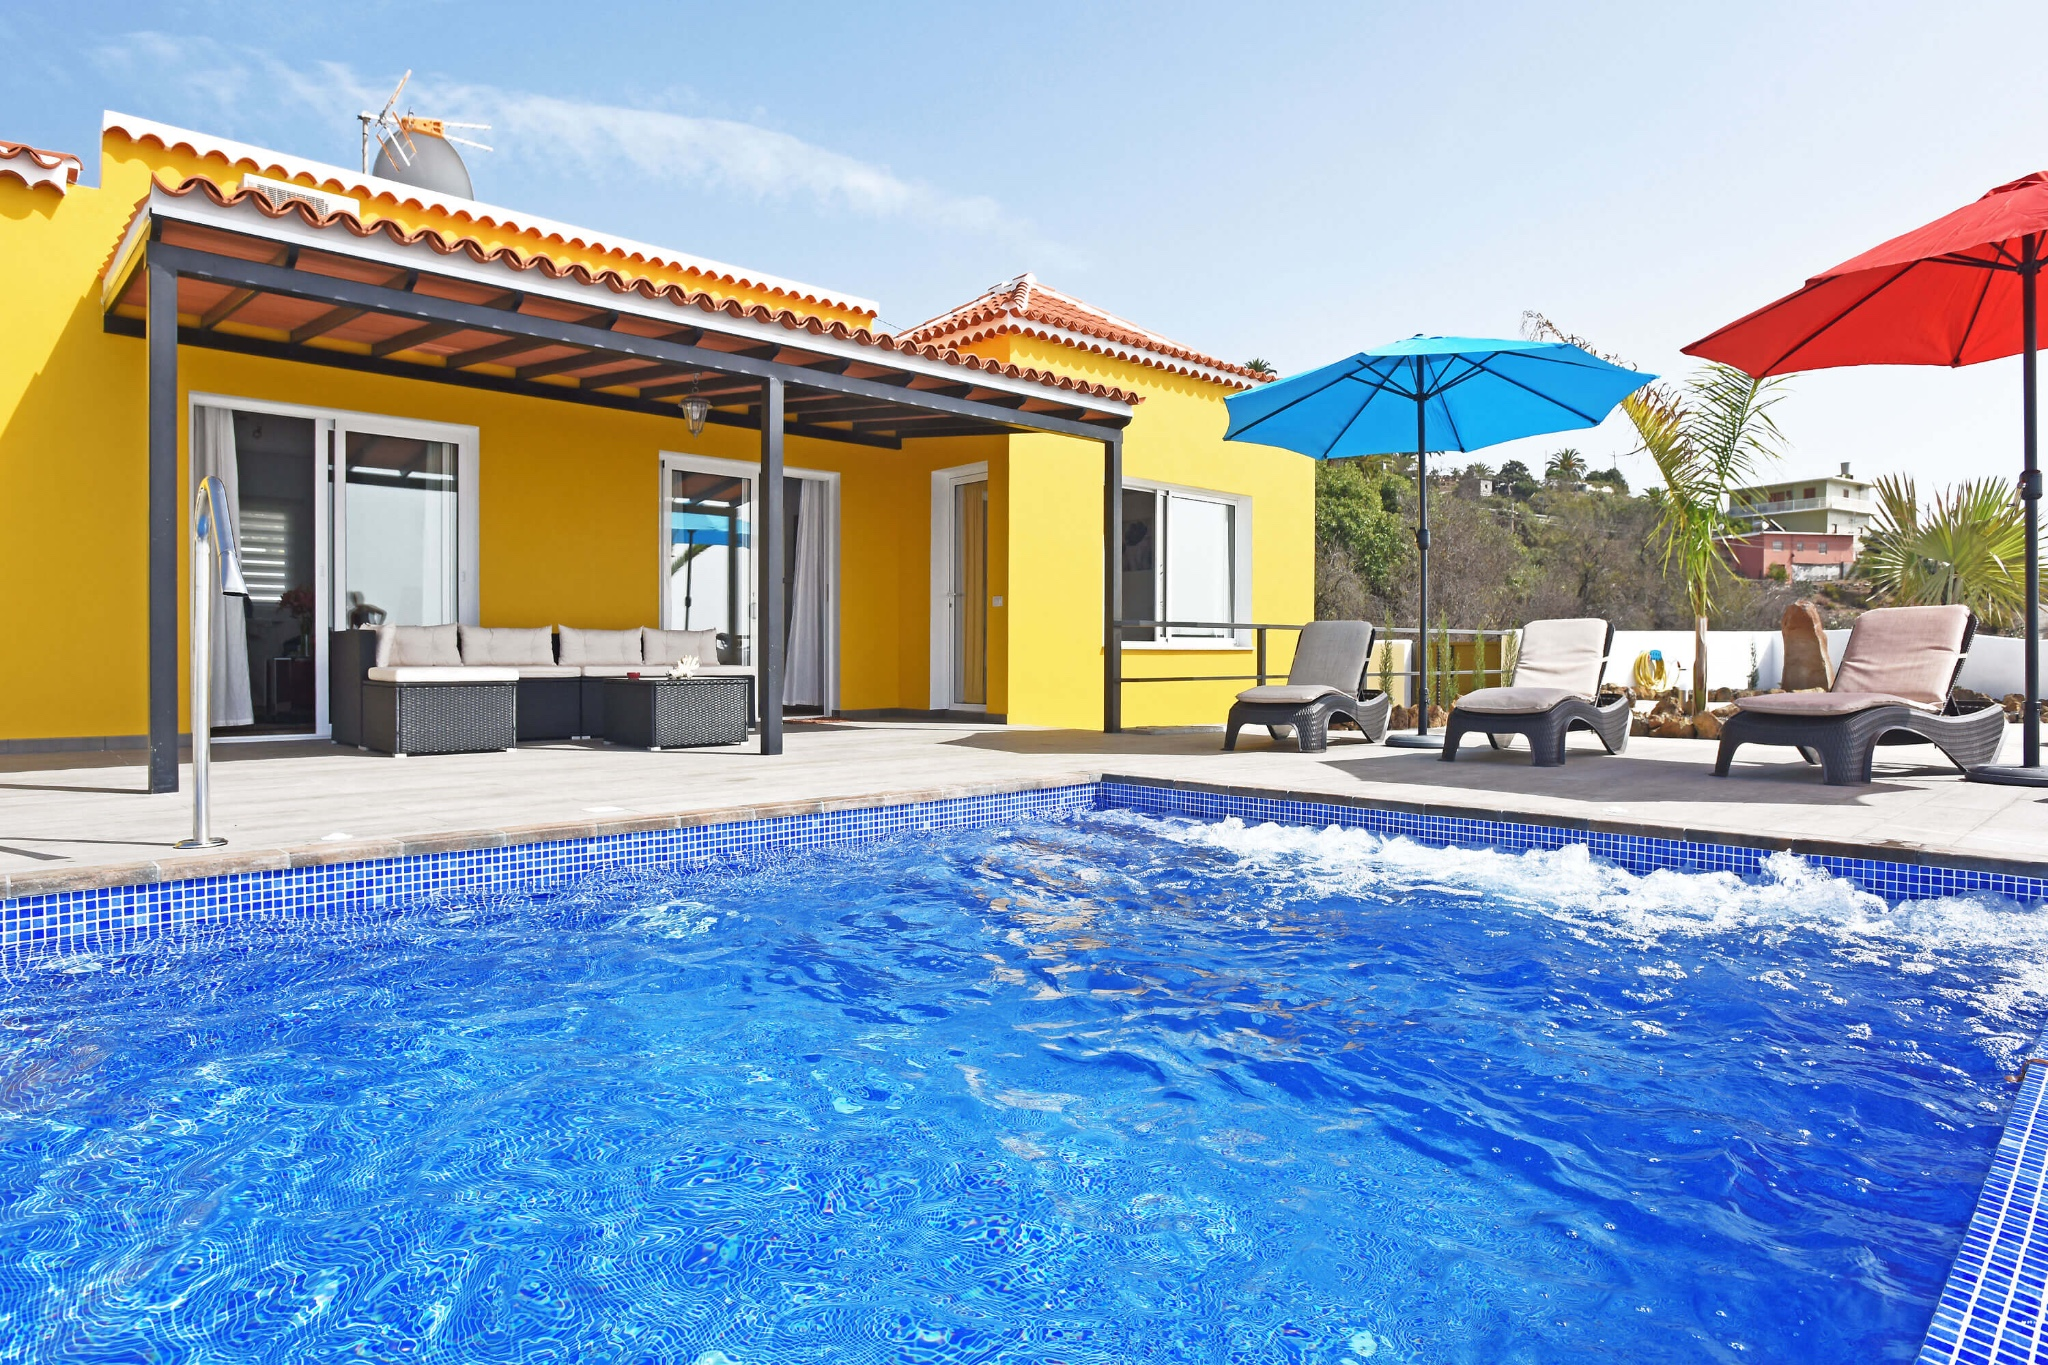 Modern charming villa with spacious pool, spectacular views and all the amenities for a relaxing holiday on the island of La Palma.